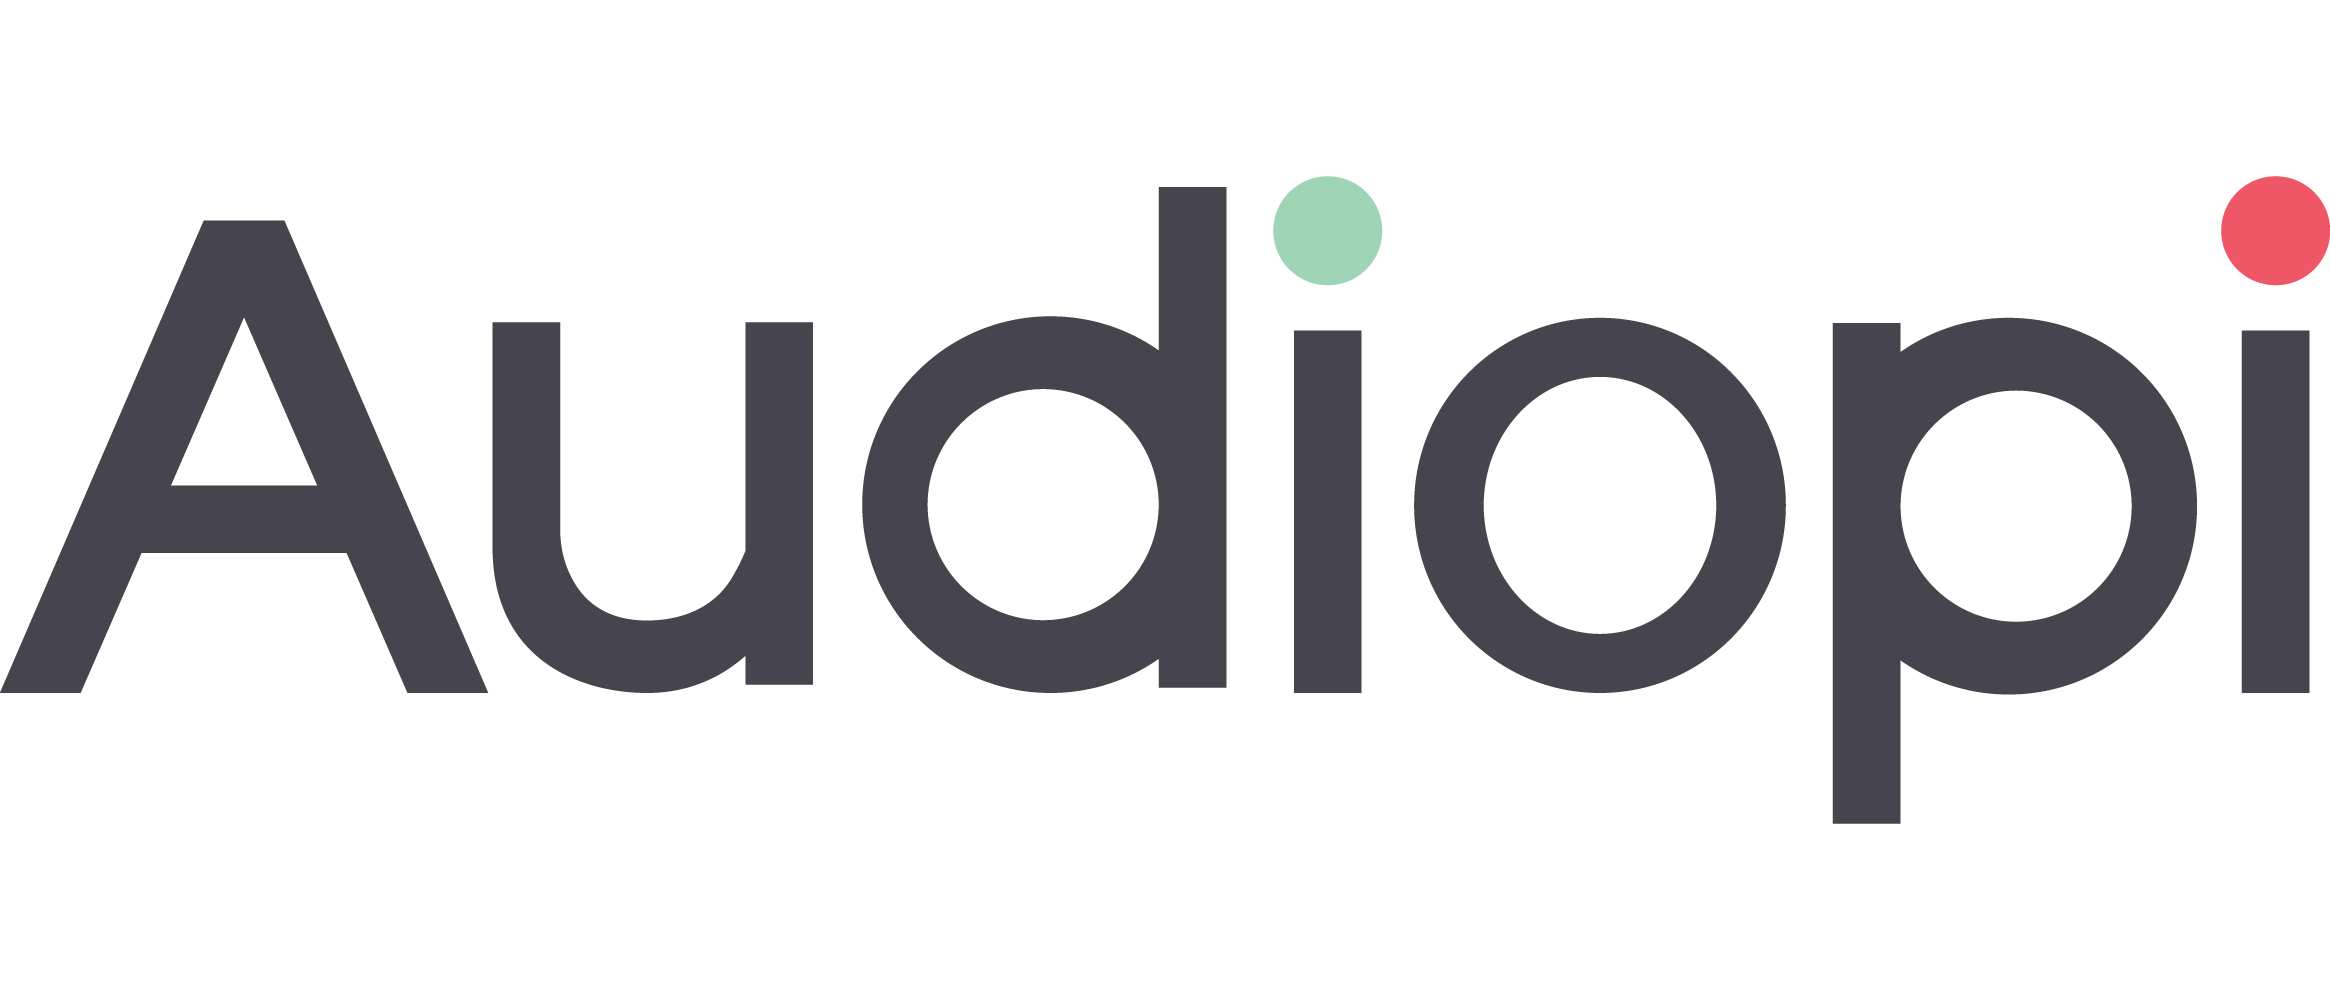 Audiopi.co.uk